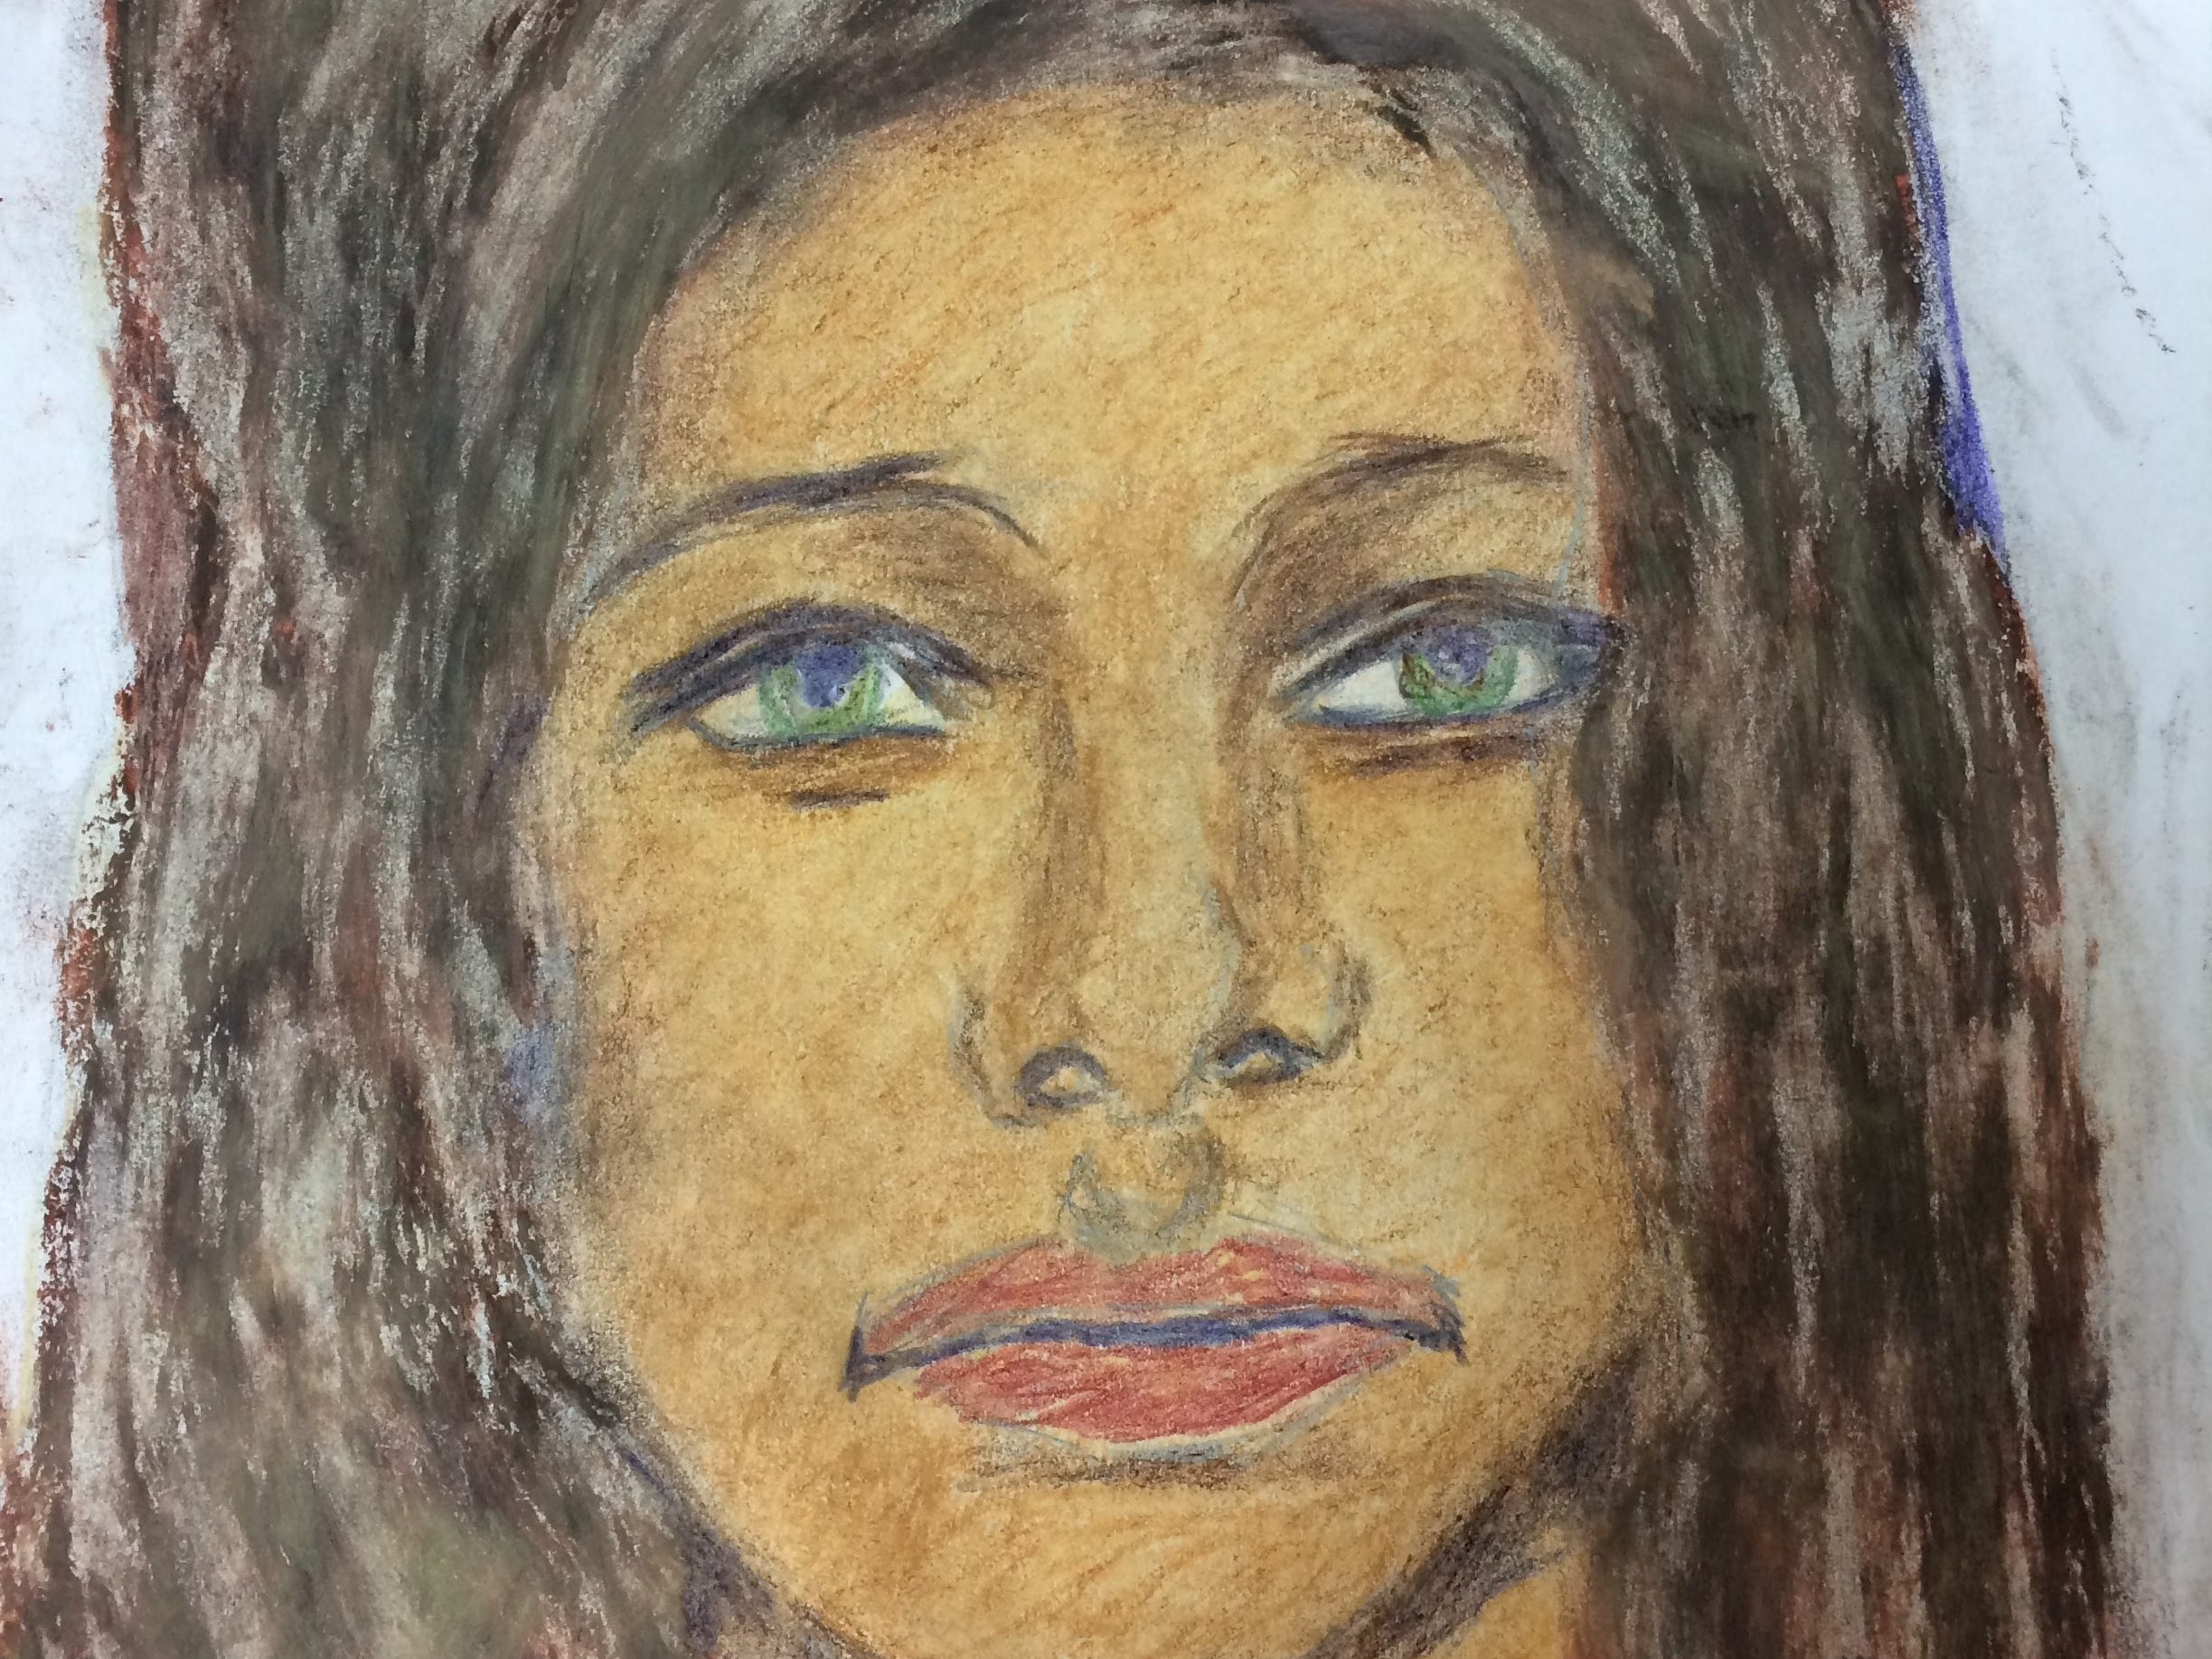 Serial killer Samuel Little drew this woman who he says he murdered in 1972 in Maryland. Little told authorities she was a white female who was between 20 to 25 years old and possibly from Massachusetts. This portrait was linked to a cold case of an unidentified woman found killed in Prince George's County. She has not yet been identified.